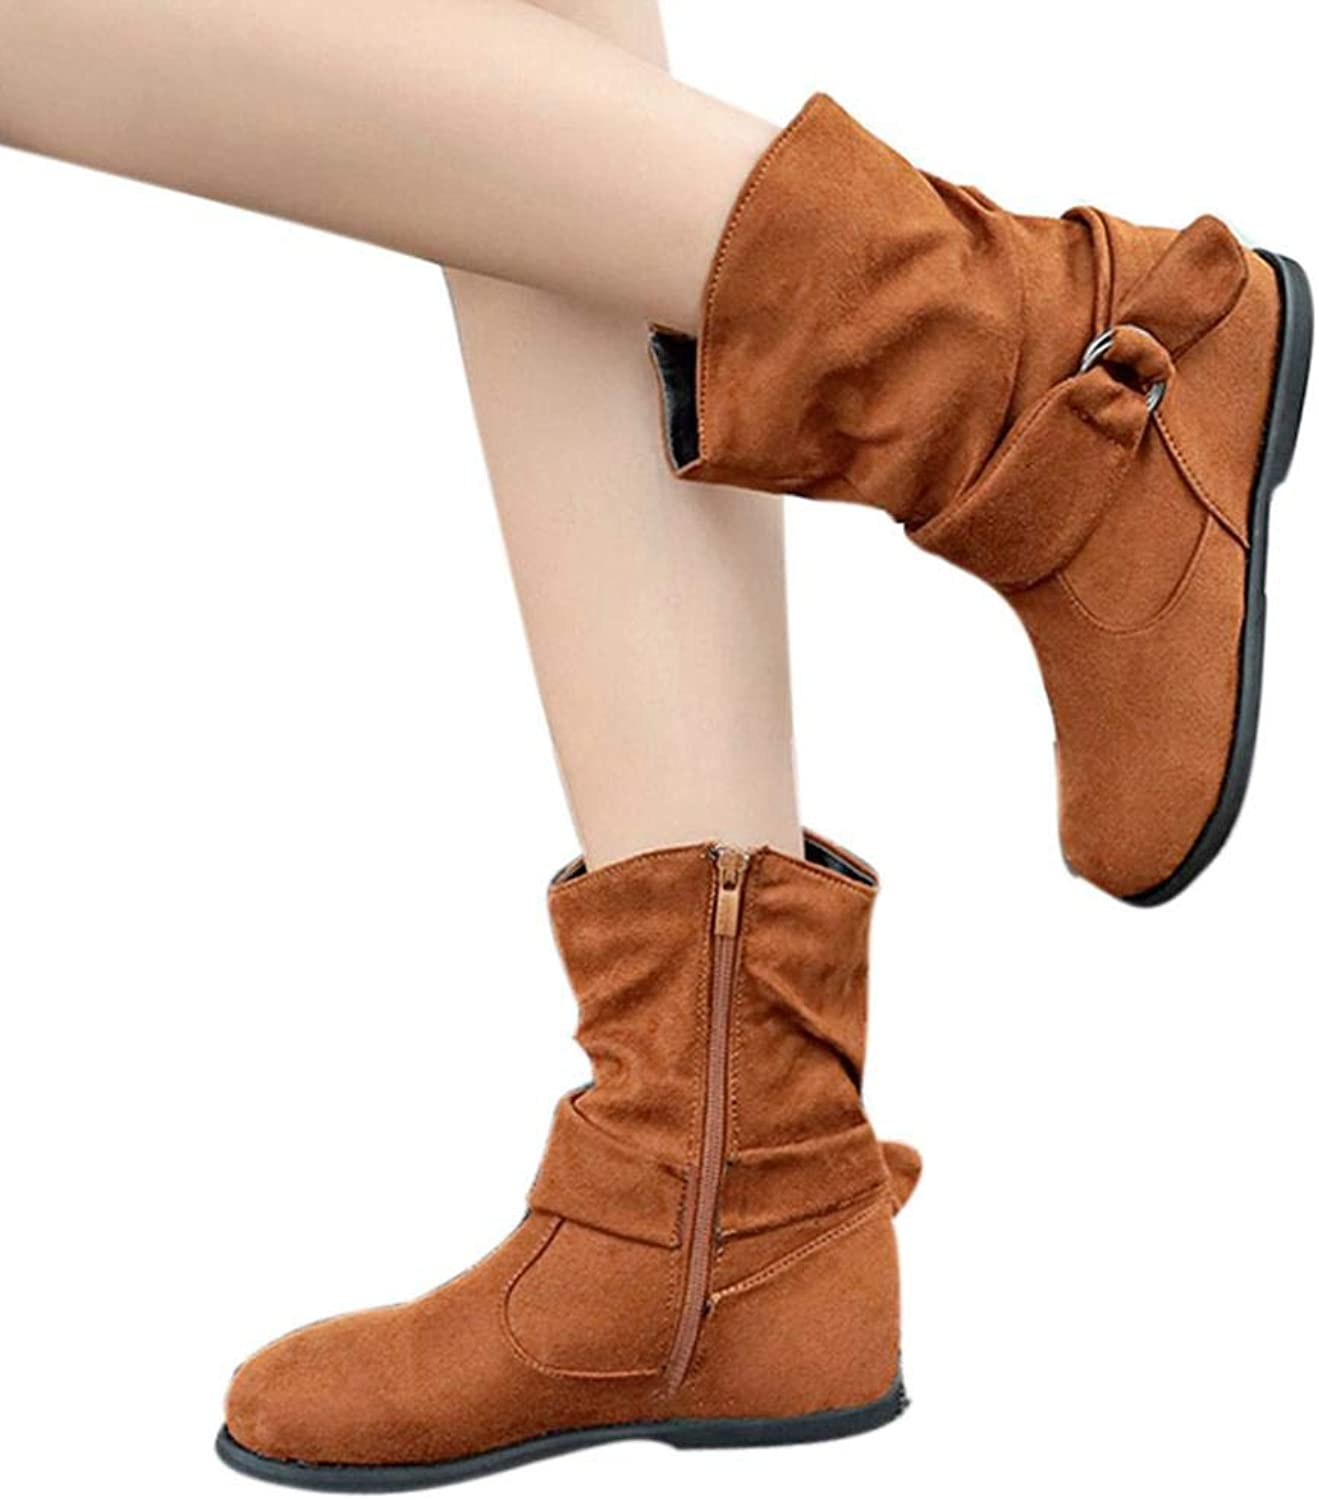 Fheaven (TM) Women Mid Calf High Boots Buckled Strap Booties shoes Slouchy Boots